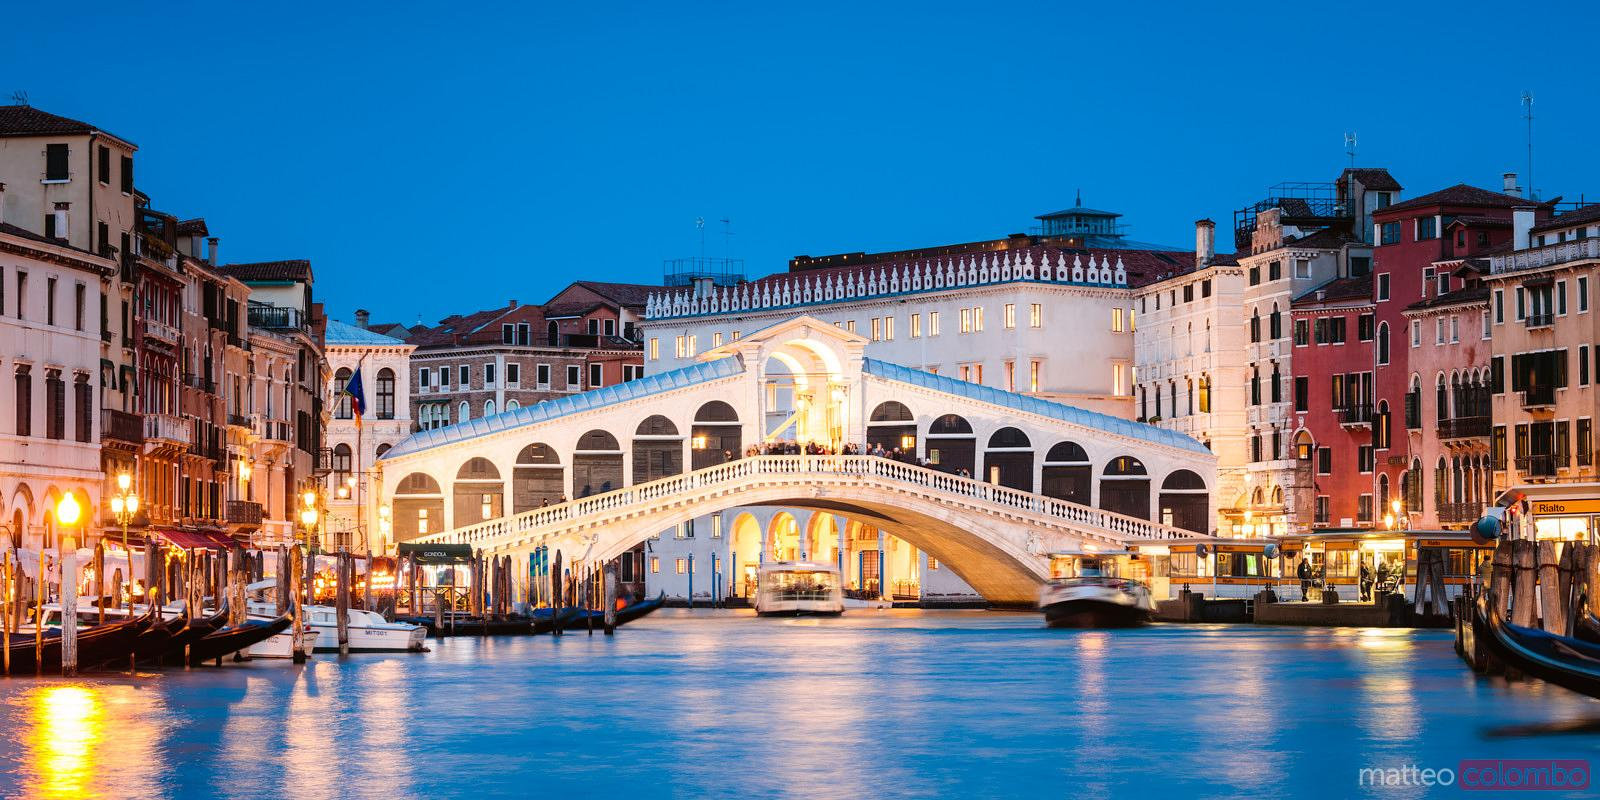 Rialto bridge panoramic at dusk, Venice